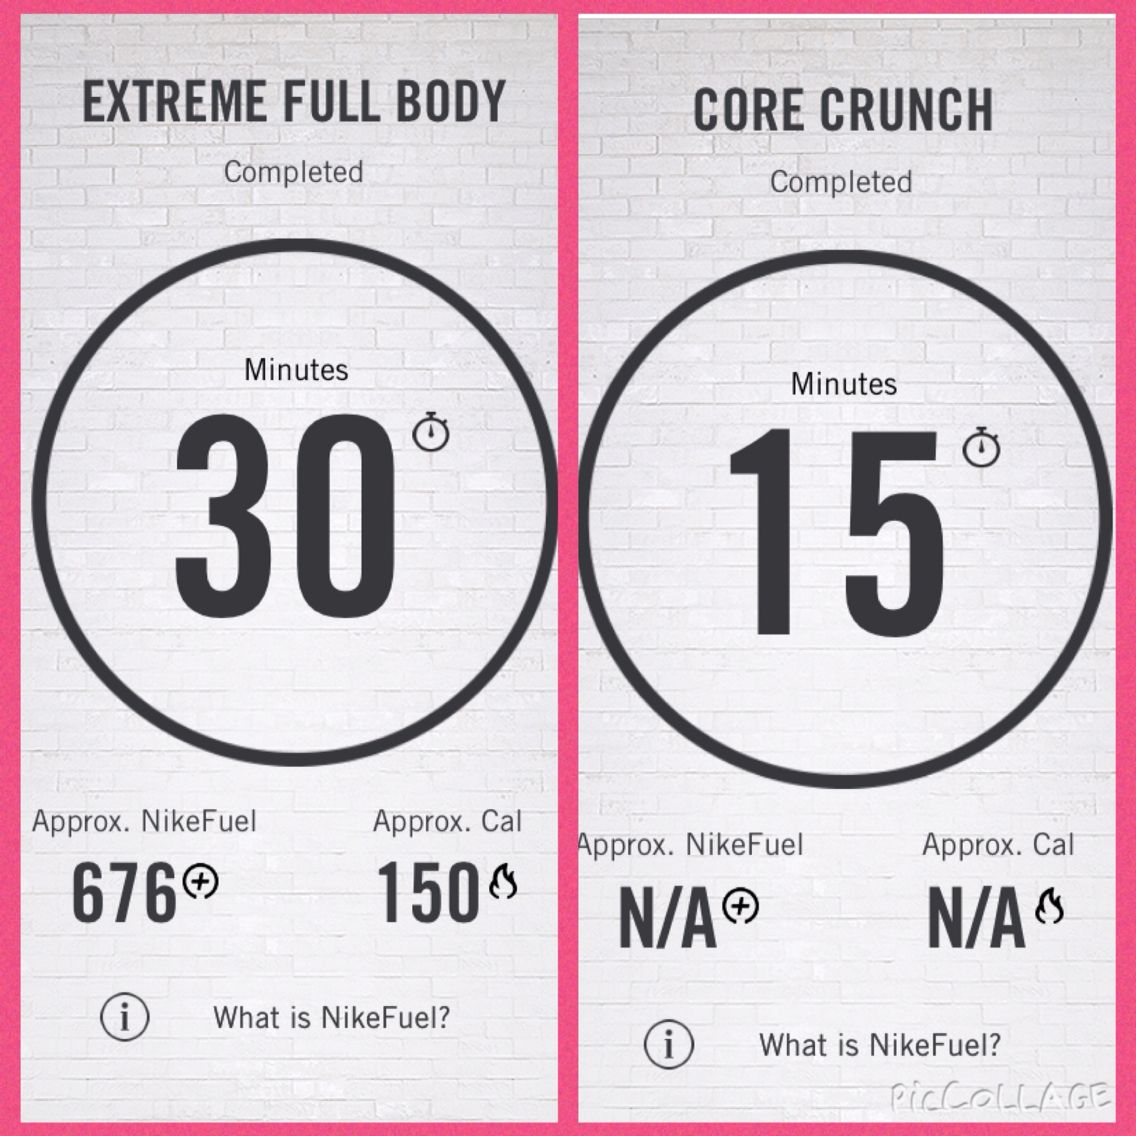 45 minutes of NTC.